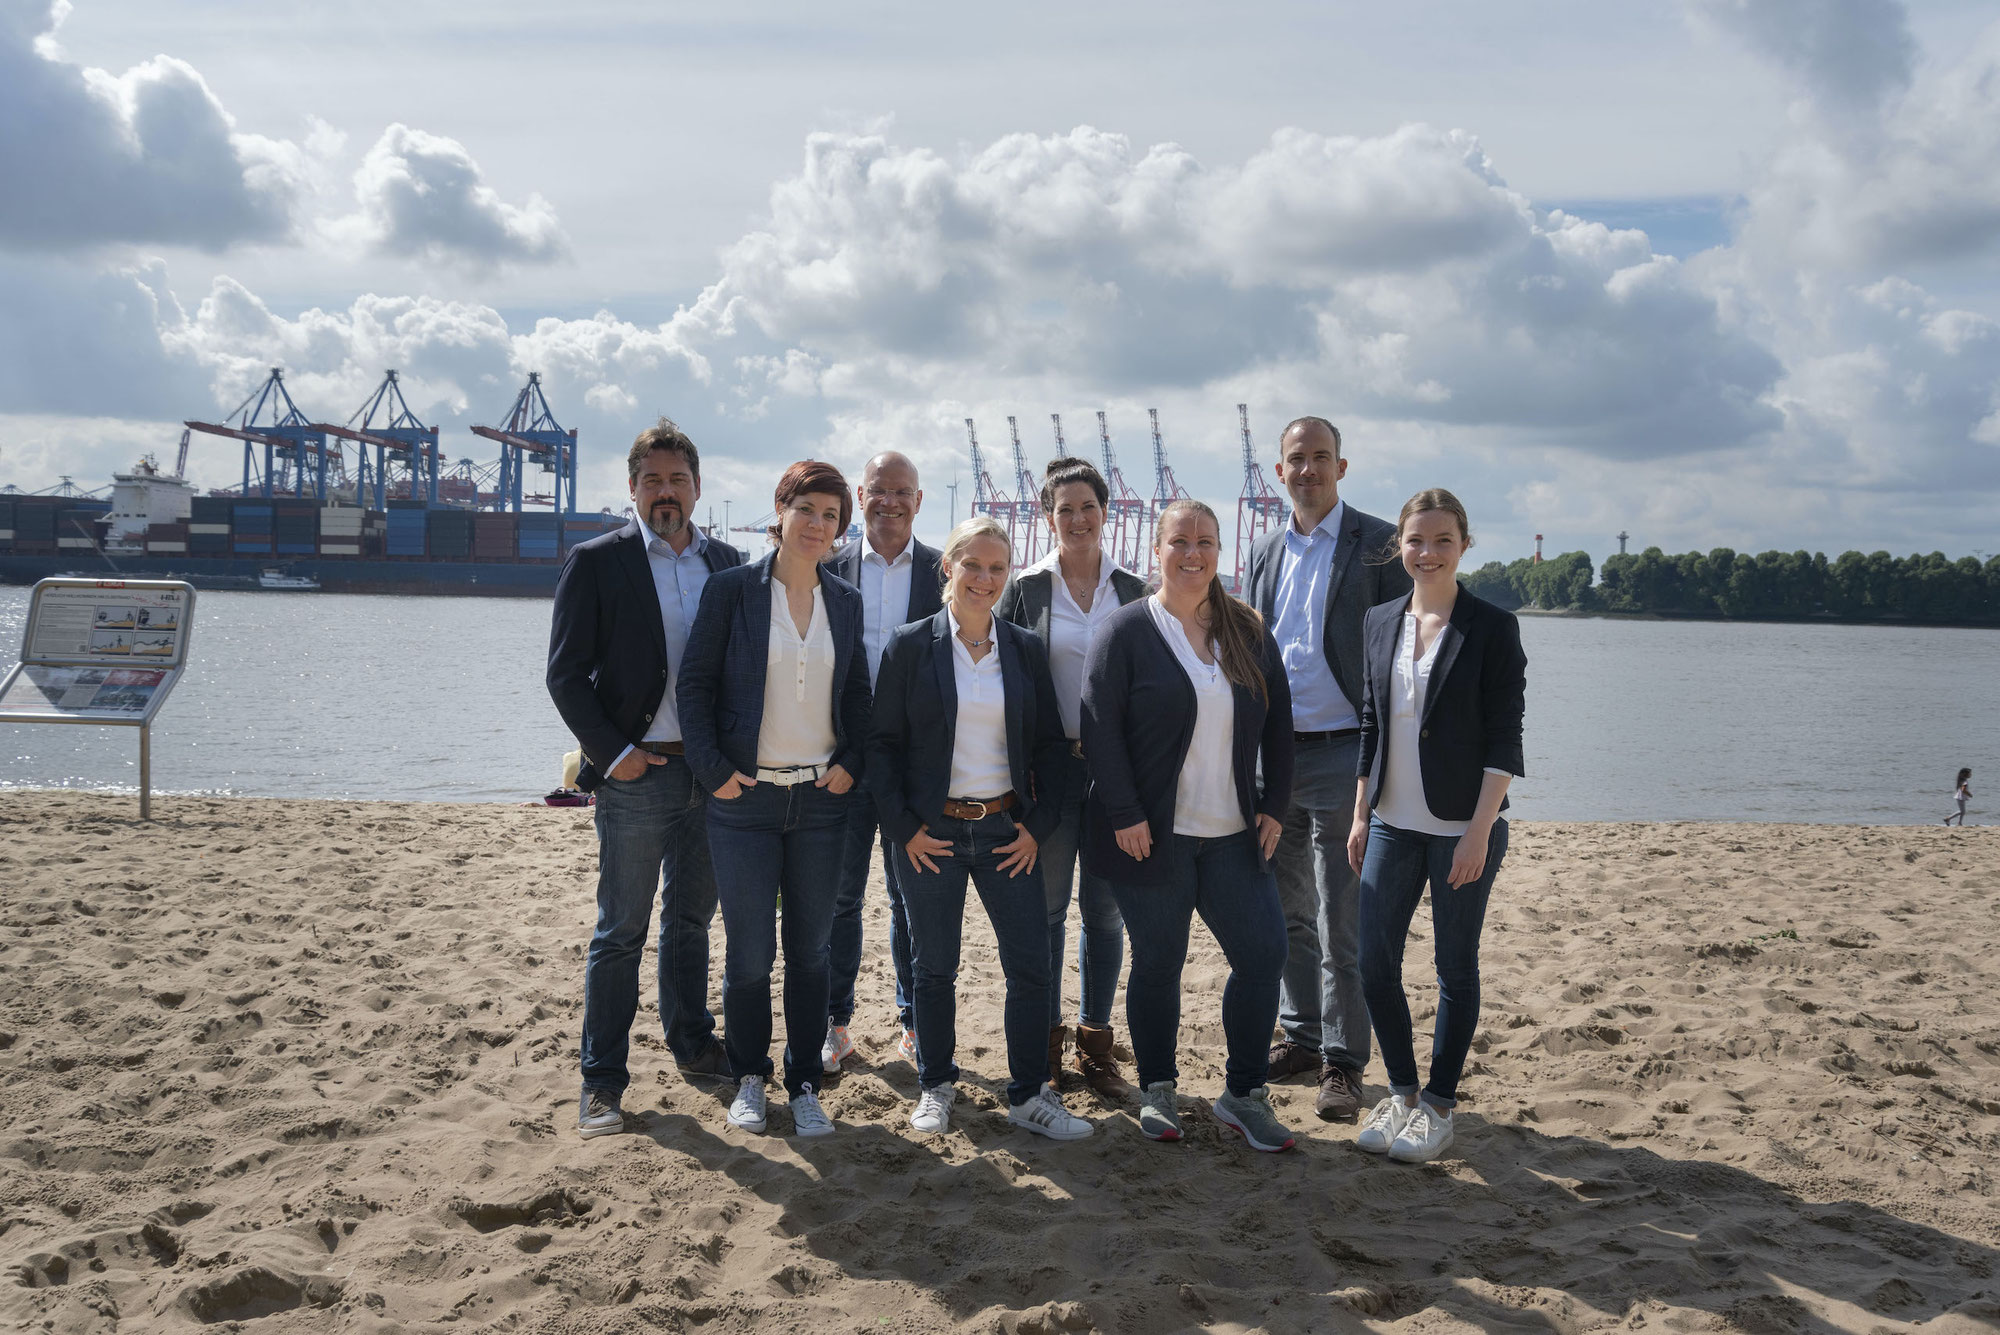 willers workgroup Fotoshooting